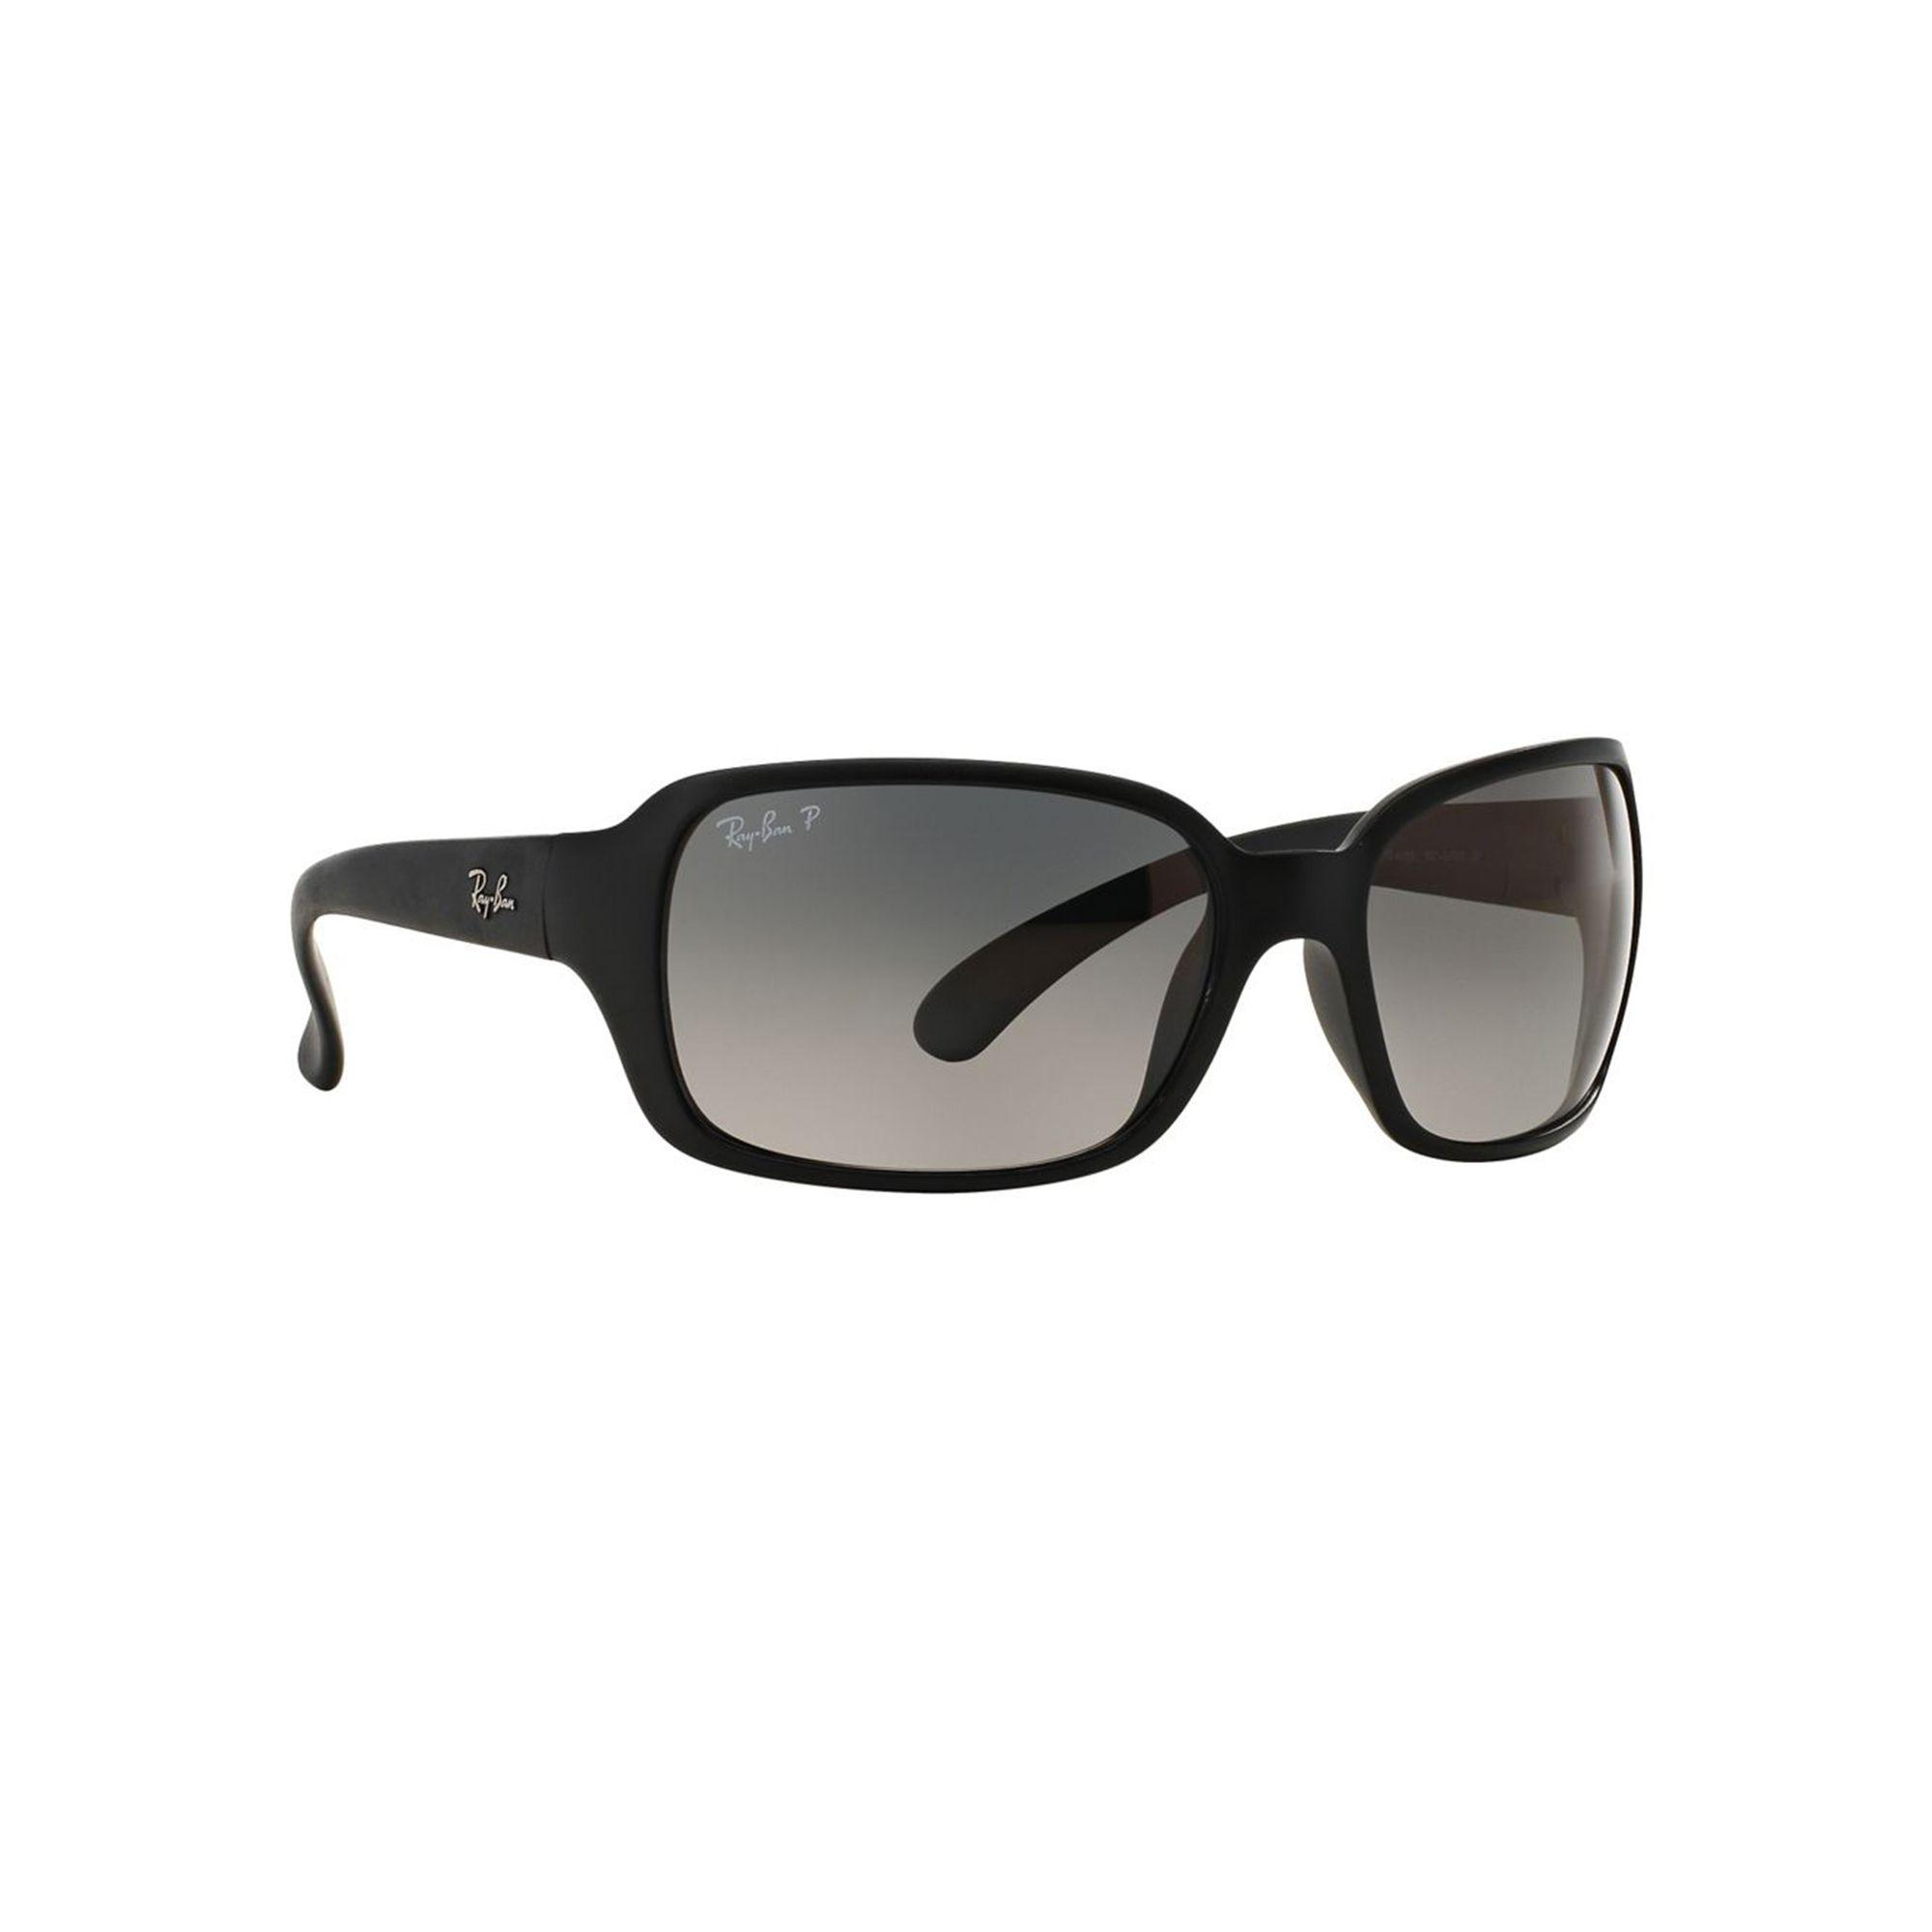 d7784ce8536 Ray-Ban Black Rb4068 Square Sunglasses in Black for Men - Lyst